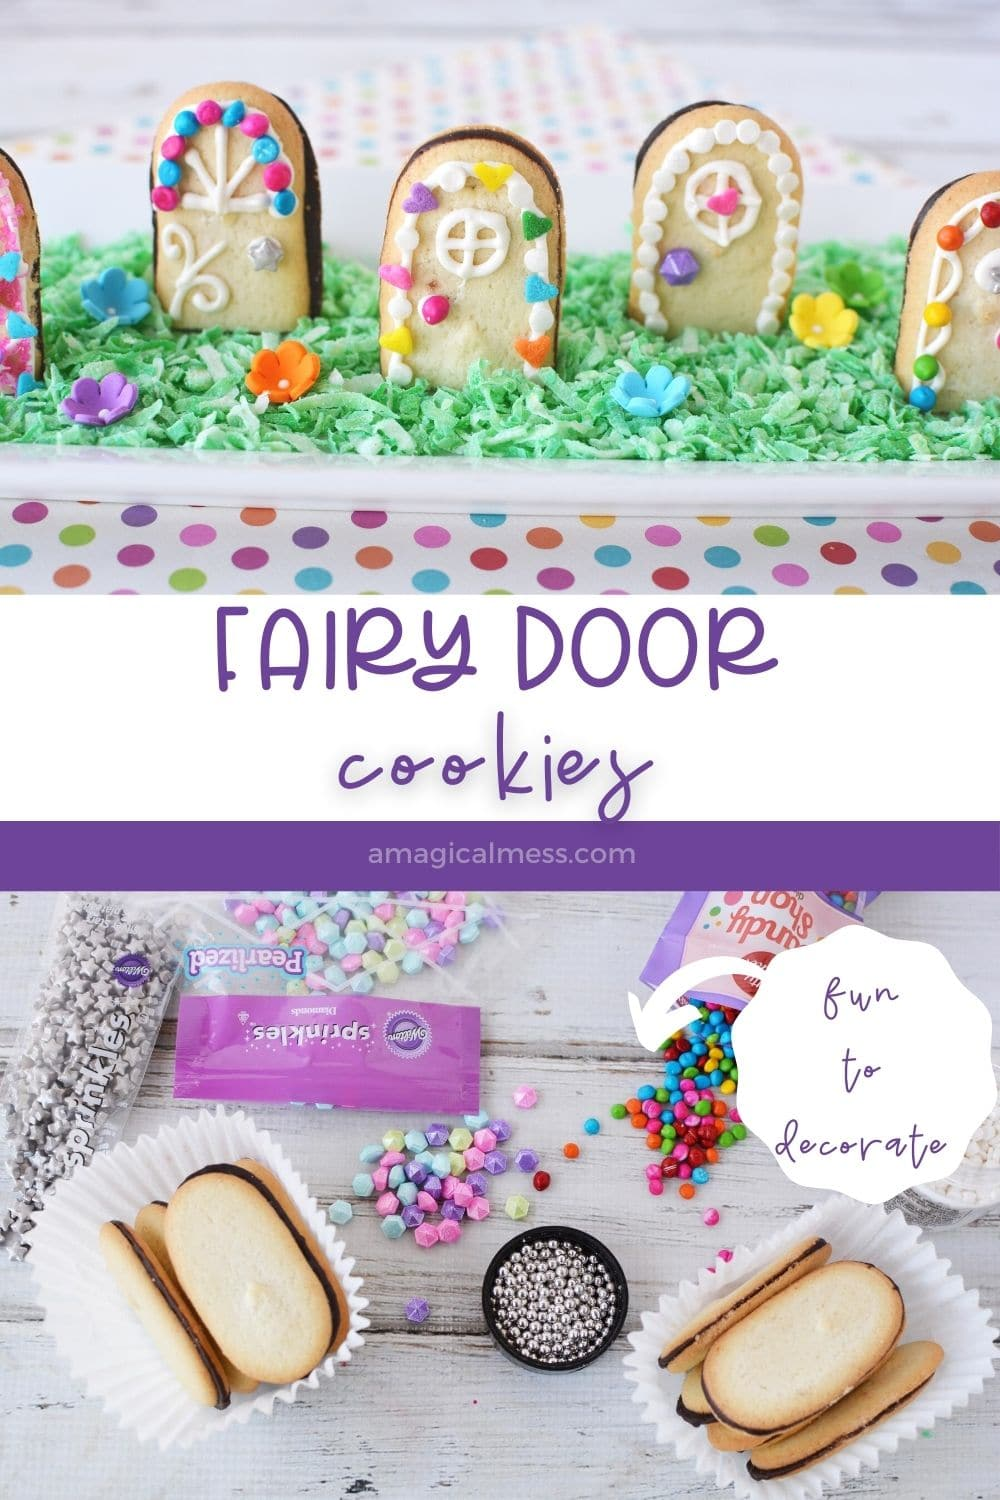 fairy door cookies and ingredients to make them